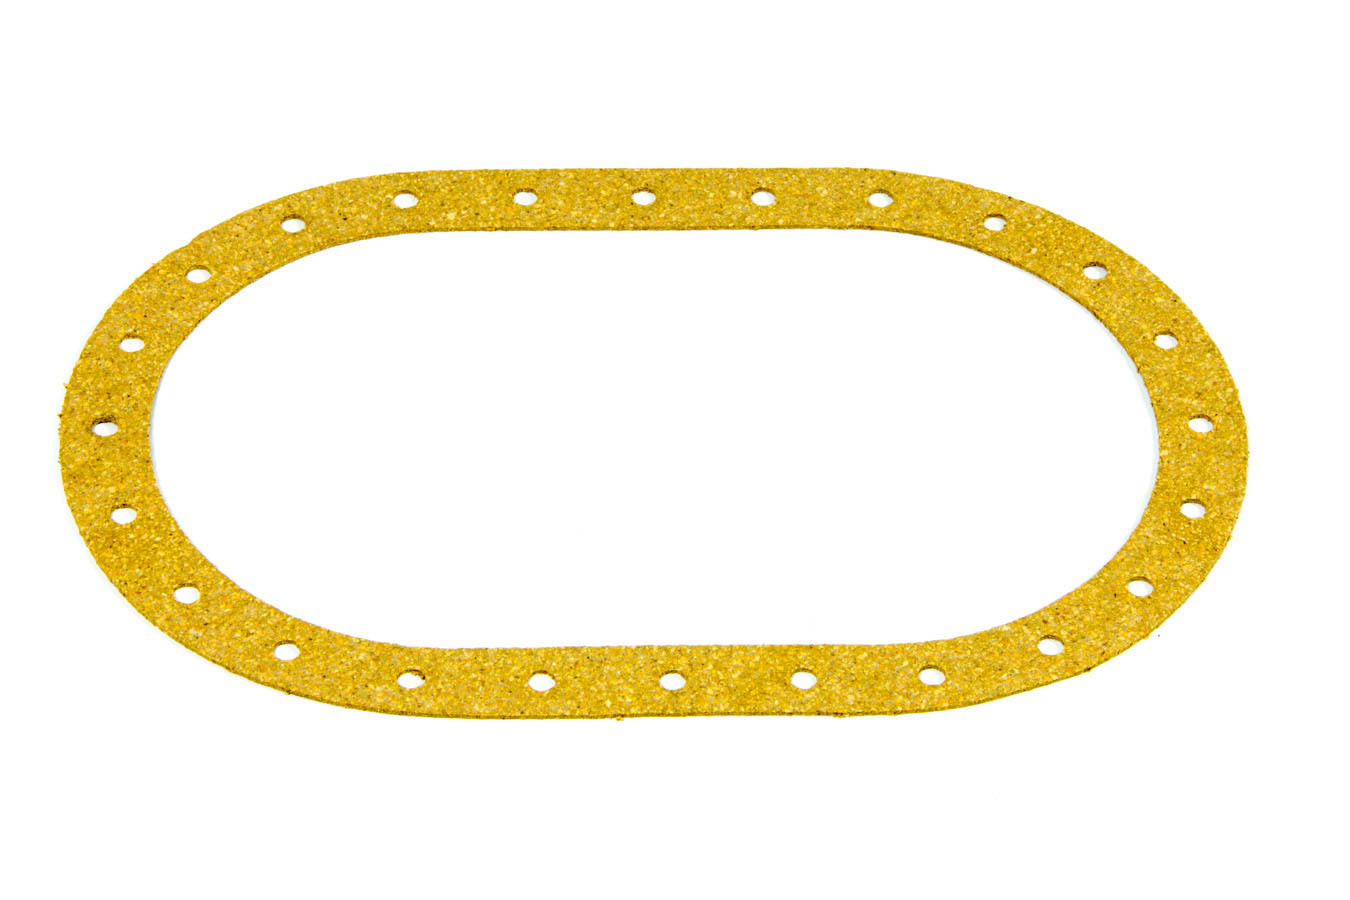 ATL Fuel Cells TF217 Fuel Cell Fill Plate Gasket, Wide, 24-Bolt, 6 x 10 in Oval, Each